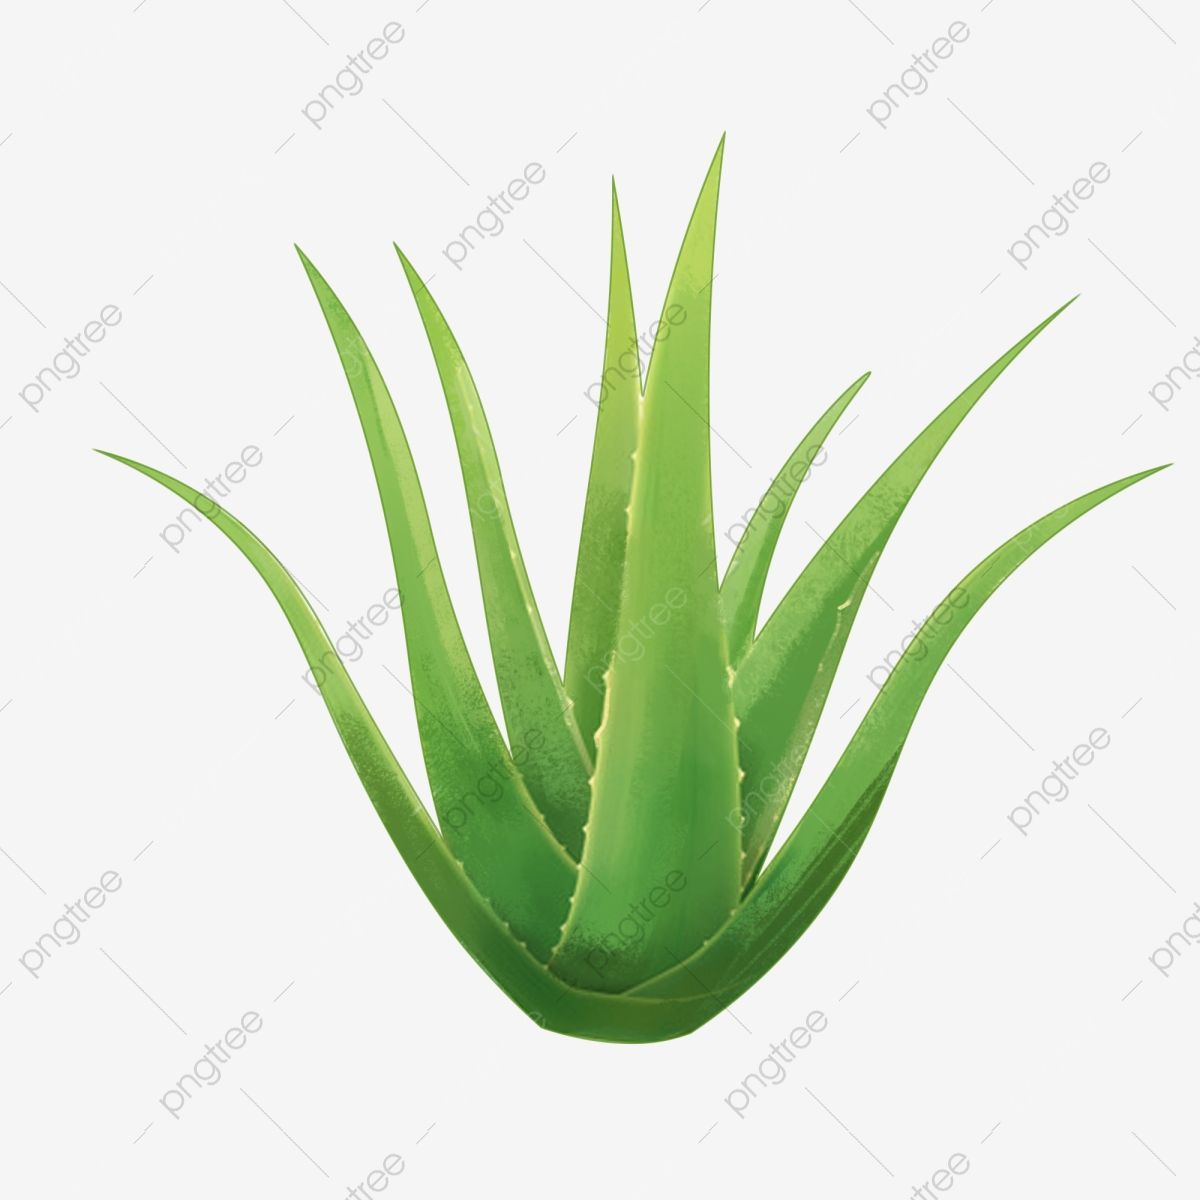 An Aloe Realistic Style Png Aloe Vera Realistic Style Plant Png Transparent Clipart Image And Psd File For Free Download In 2021 Clipart Images Clip Art Image